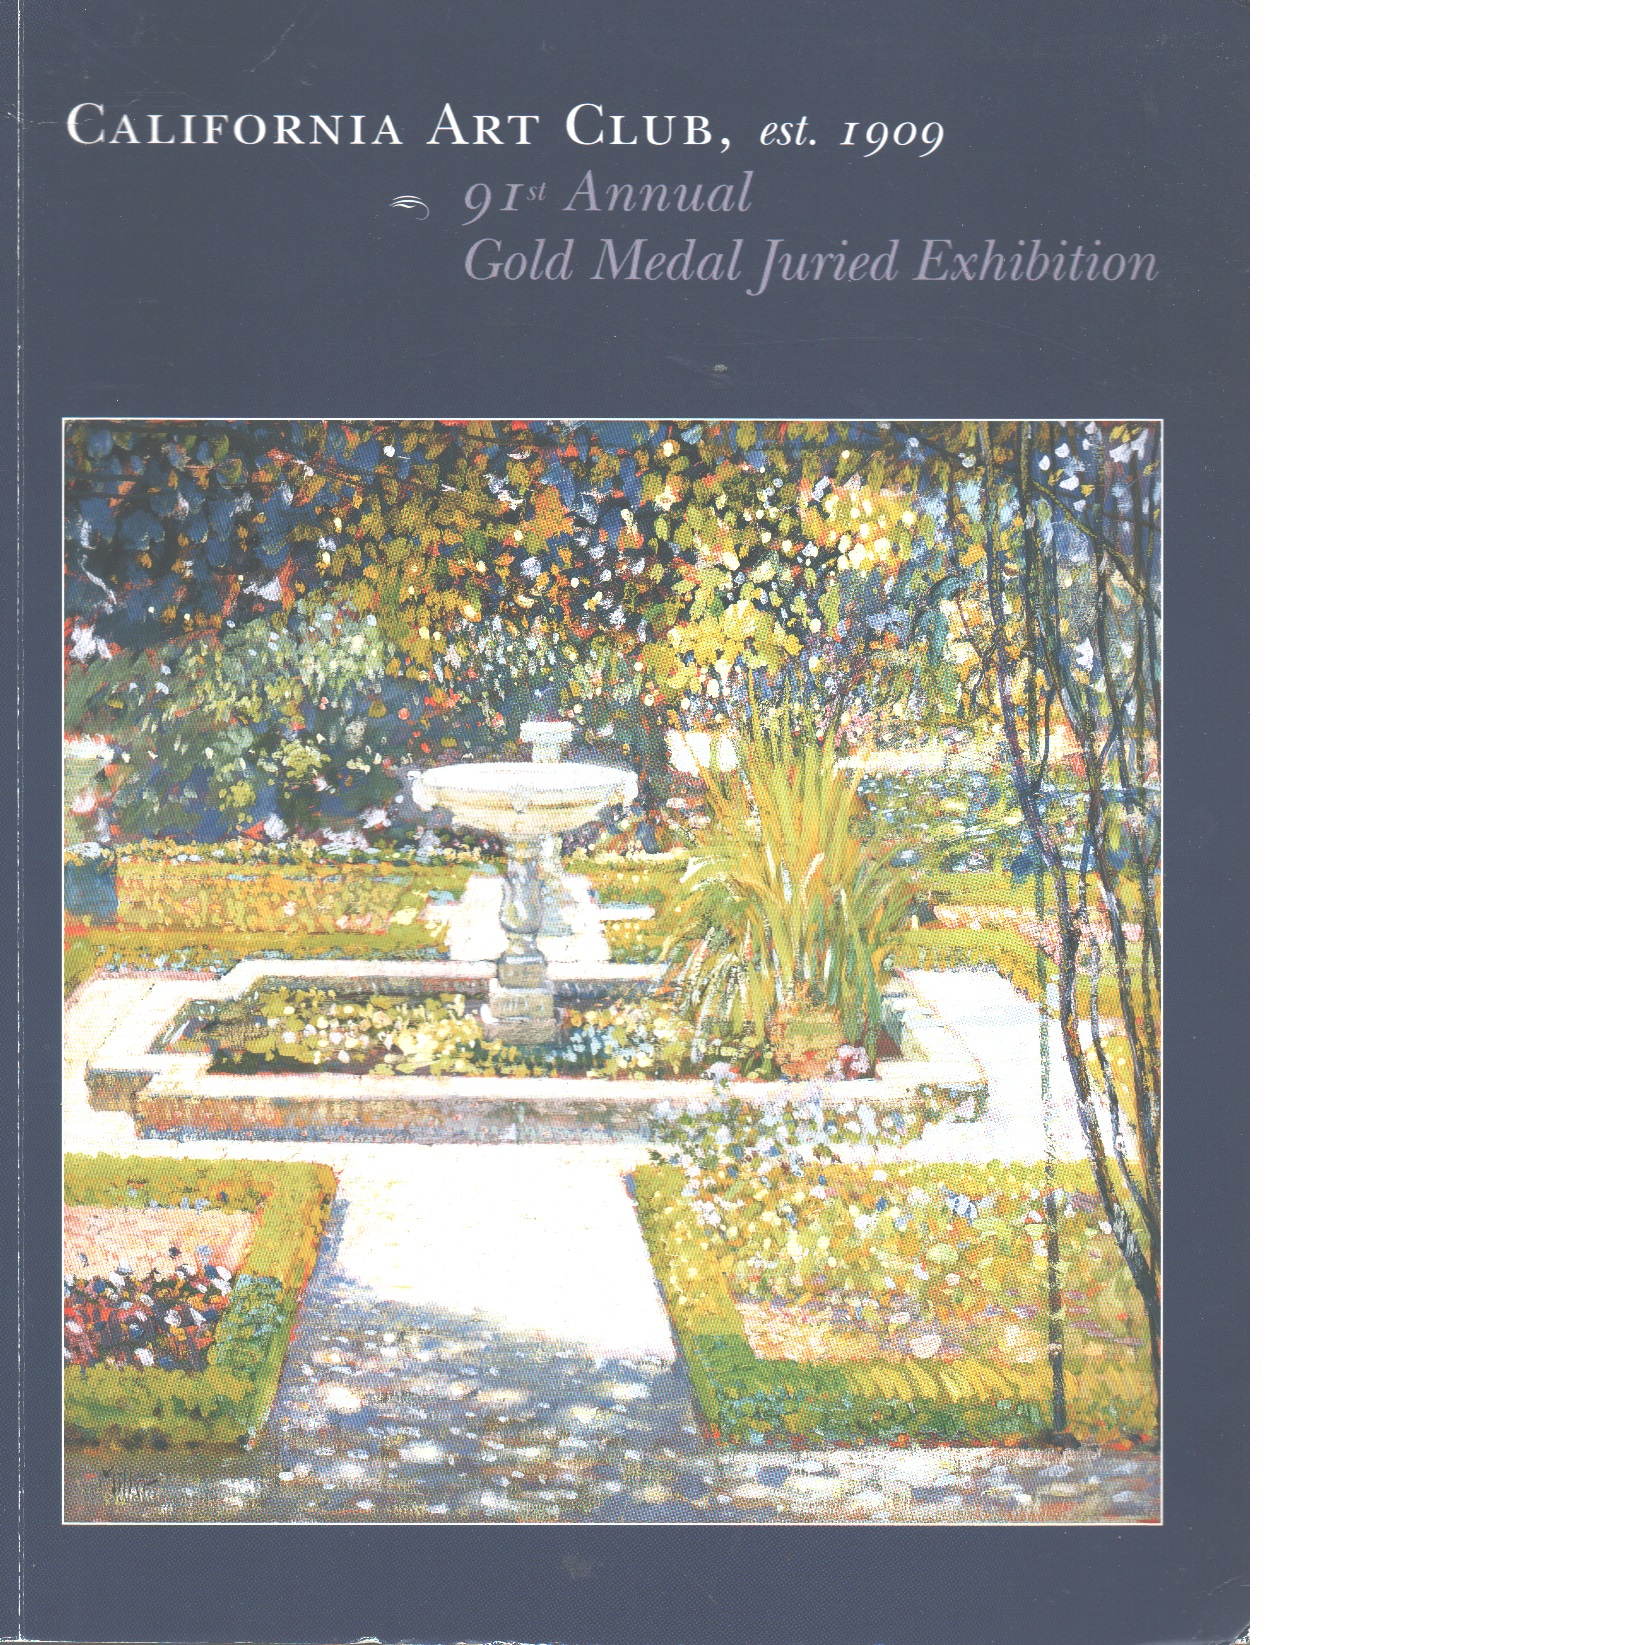 91nd Annual Gold Medal Juried Exhibition - Red. California Art Club